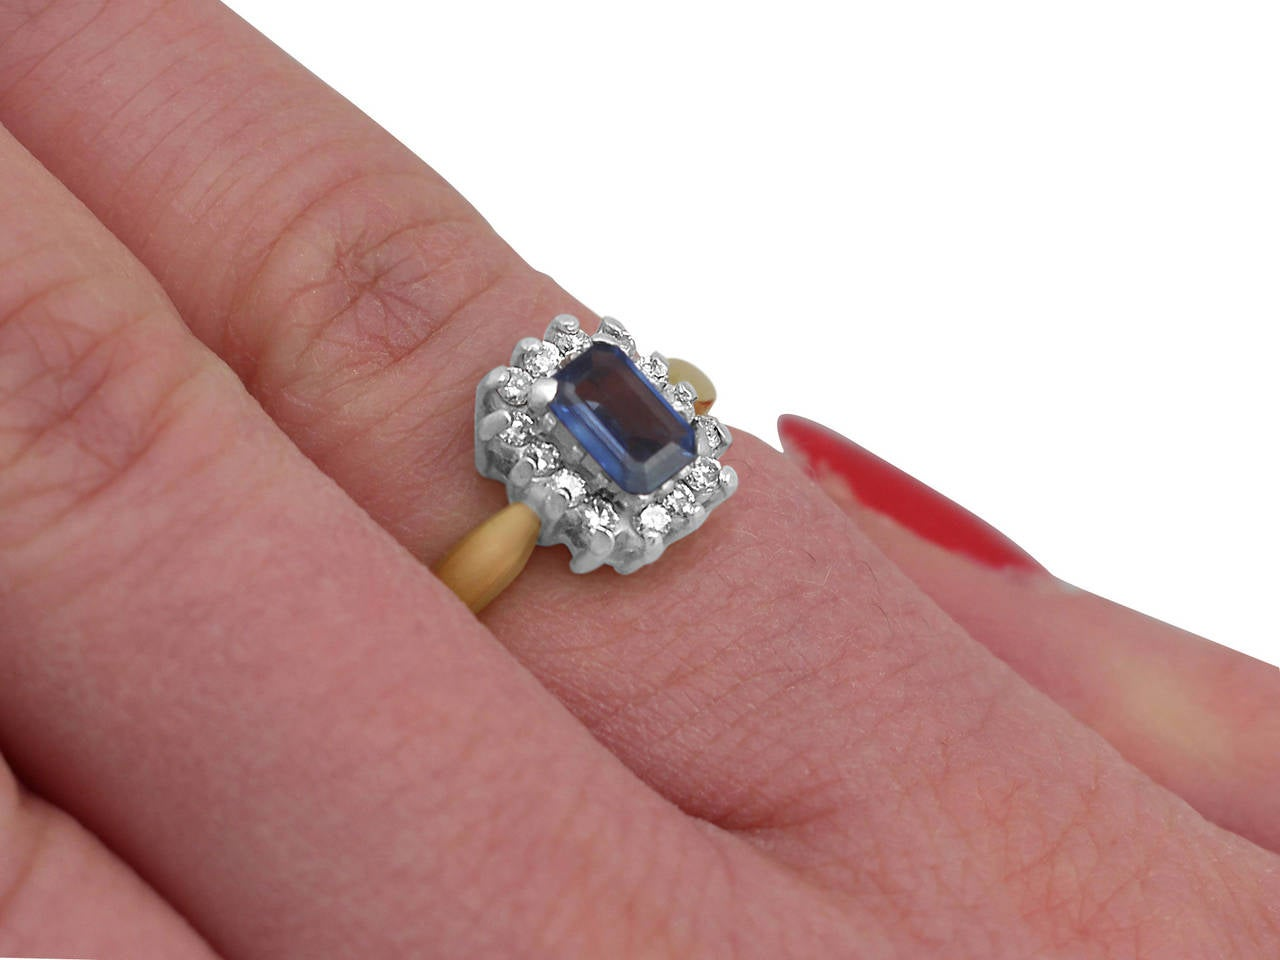 0.48Ct Sapphire & 0.35Ct Diamond, 18k Yellow Gold Cluster Ring - Vintage 8